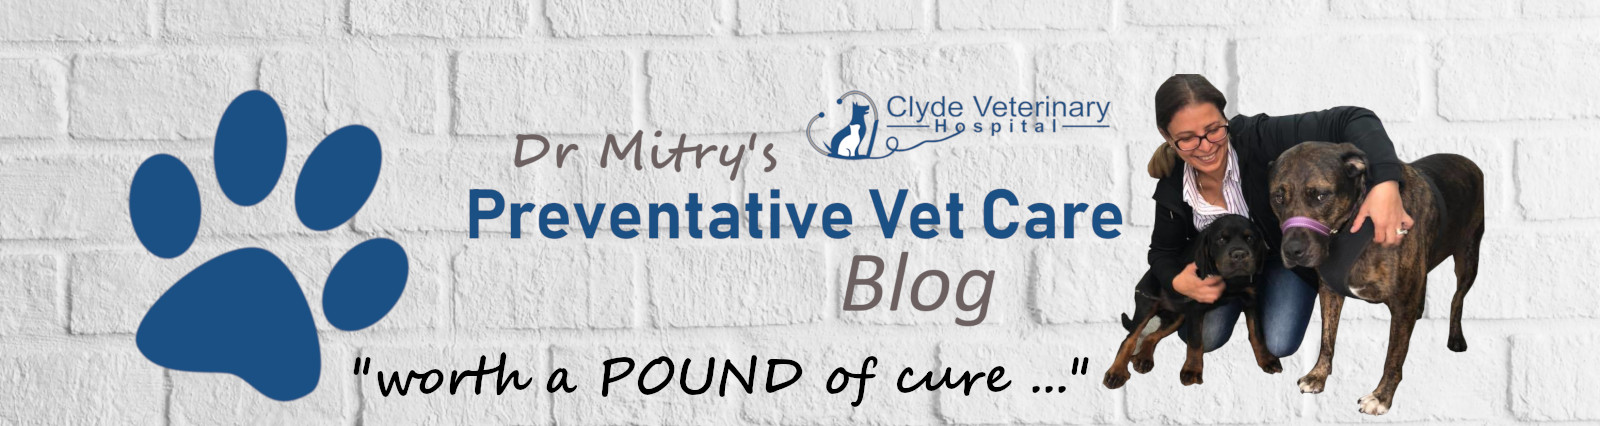 preventative veterinary care blog for dogs and cats